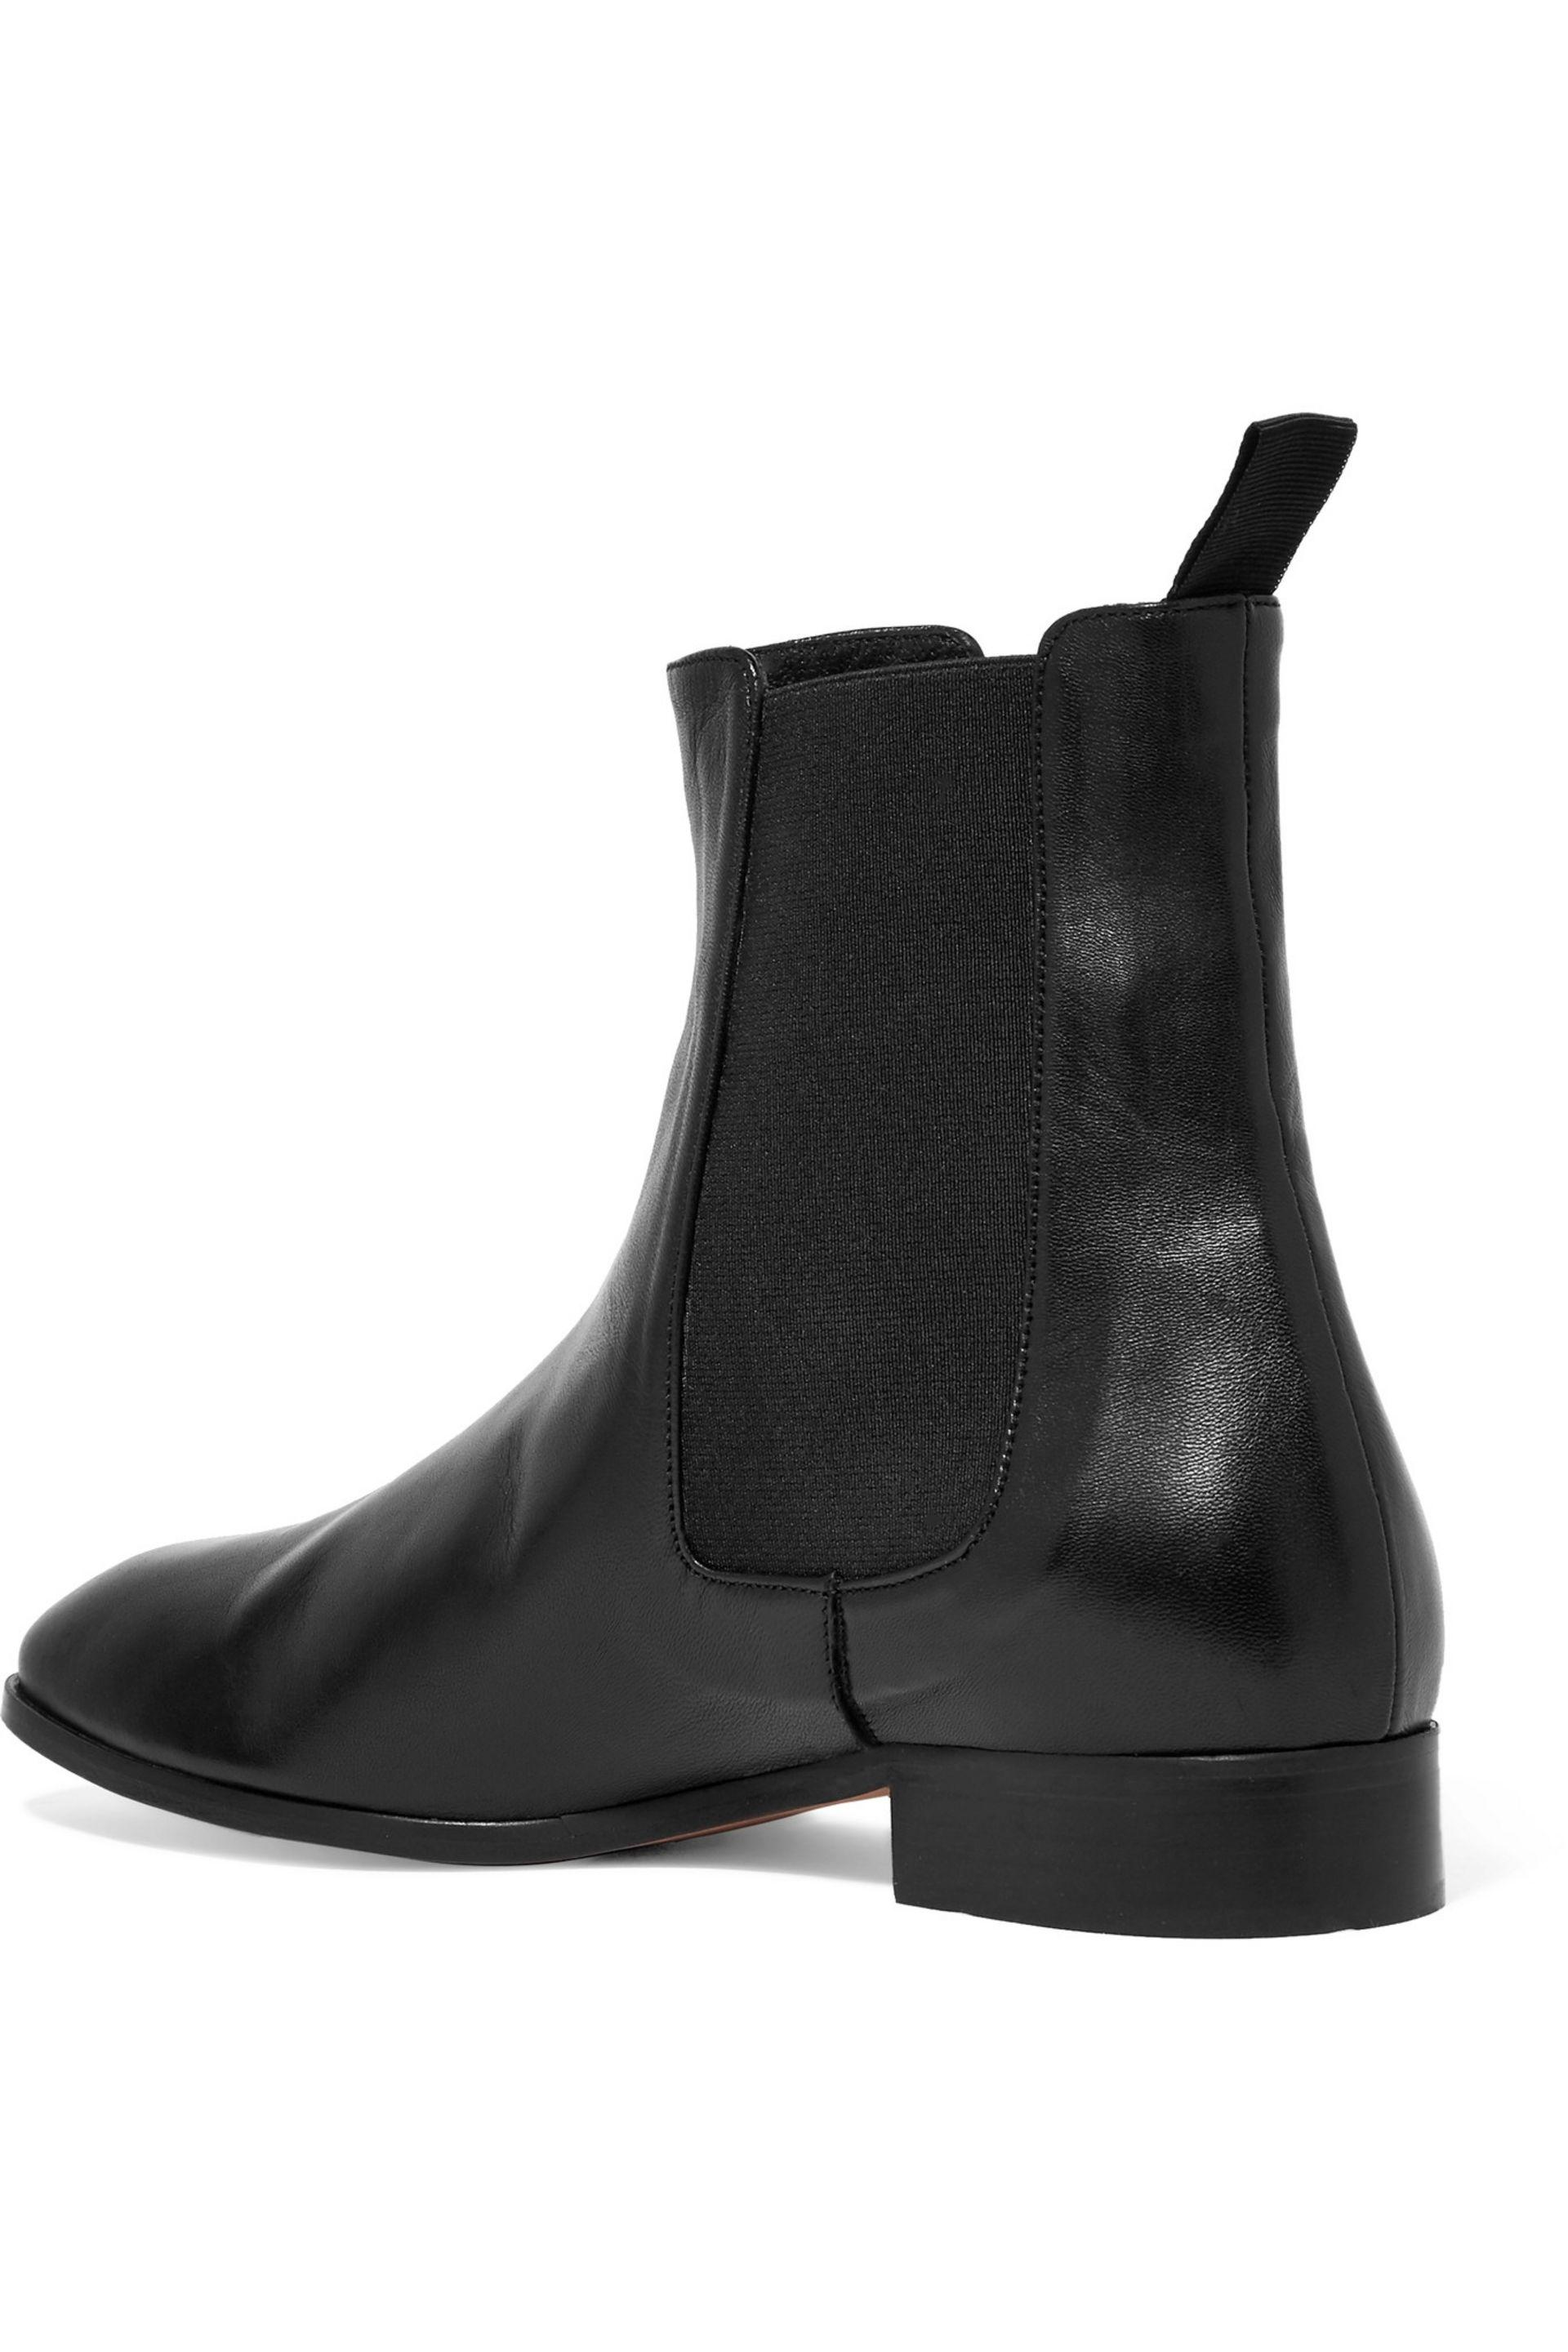 shopping online free shipping IRIS & INK Ankle boots authentic cheap price new styles online affordable sale online free shipping high quality HpOZAriIL